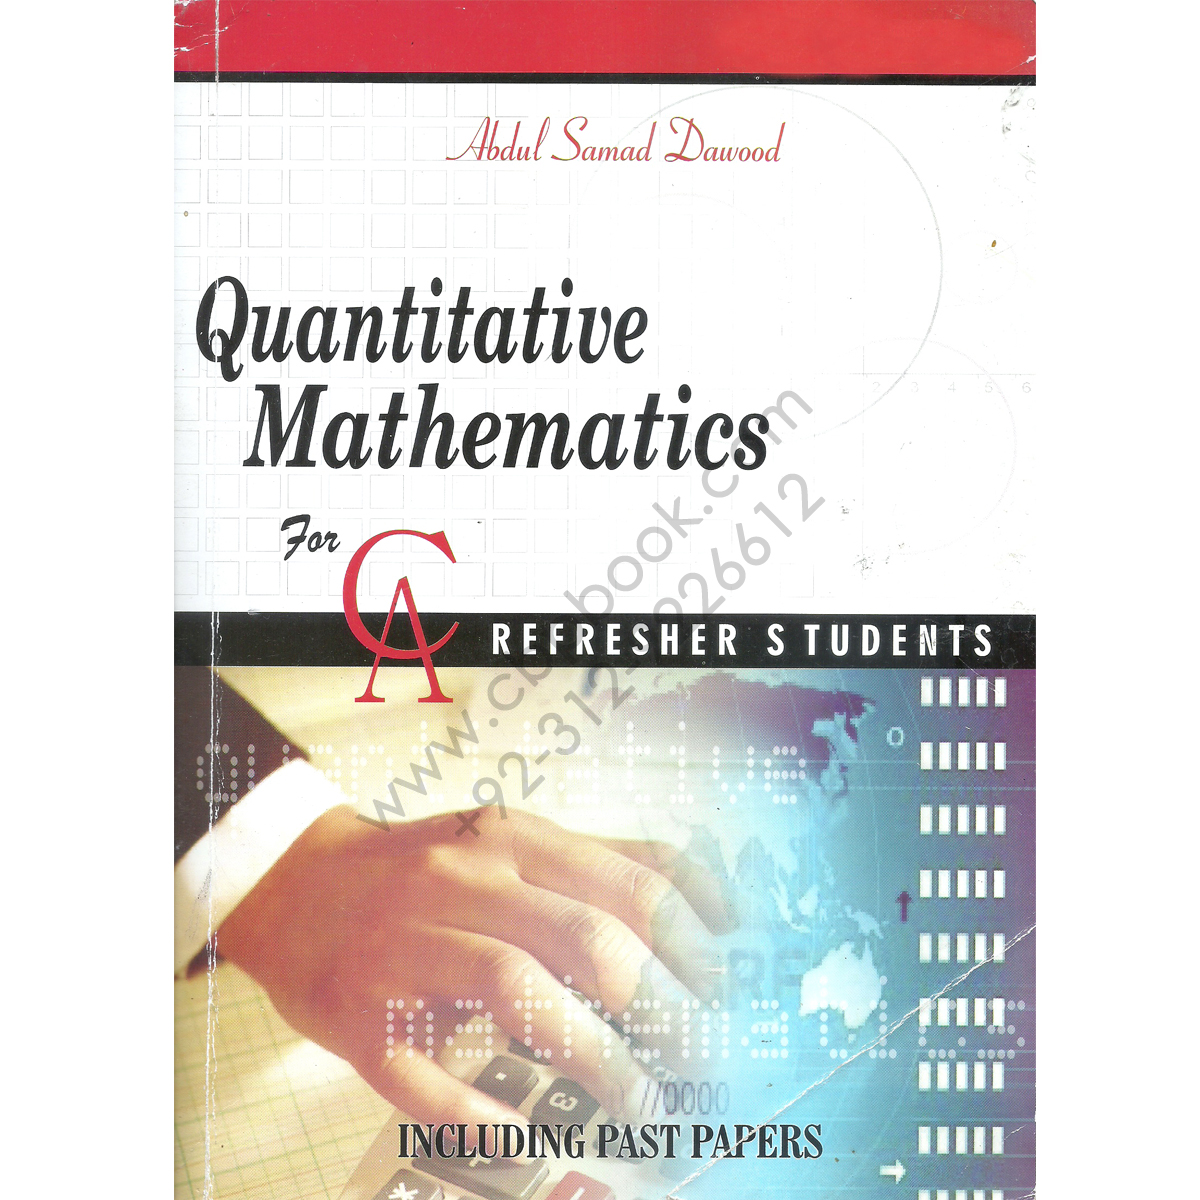 quantitative mathematics for ca refresher students including past papers 3rd edition by abdul samad dawood